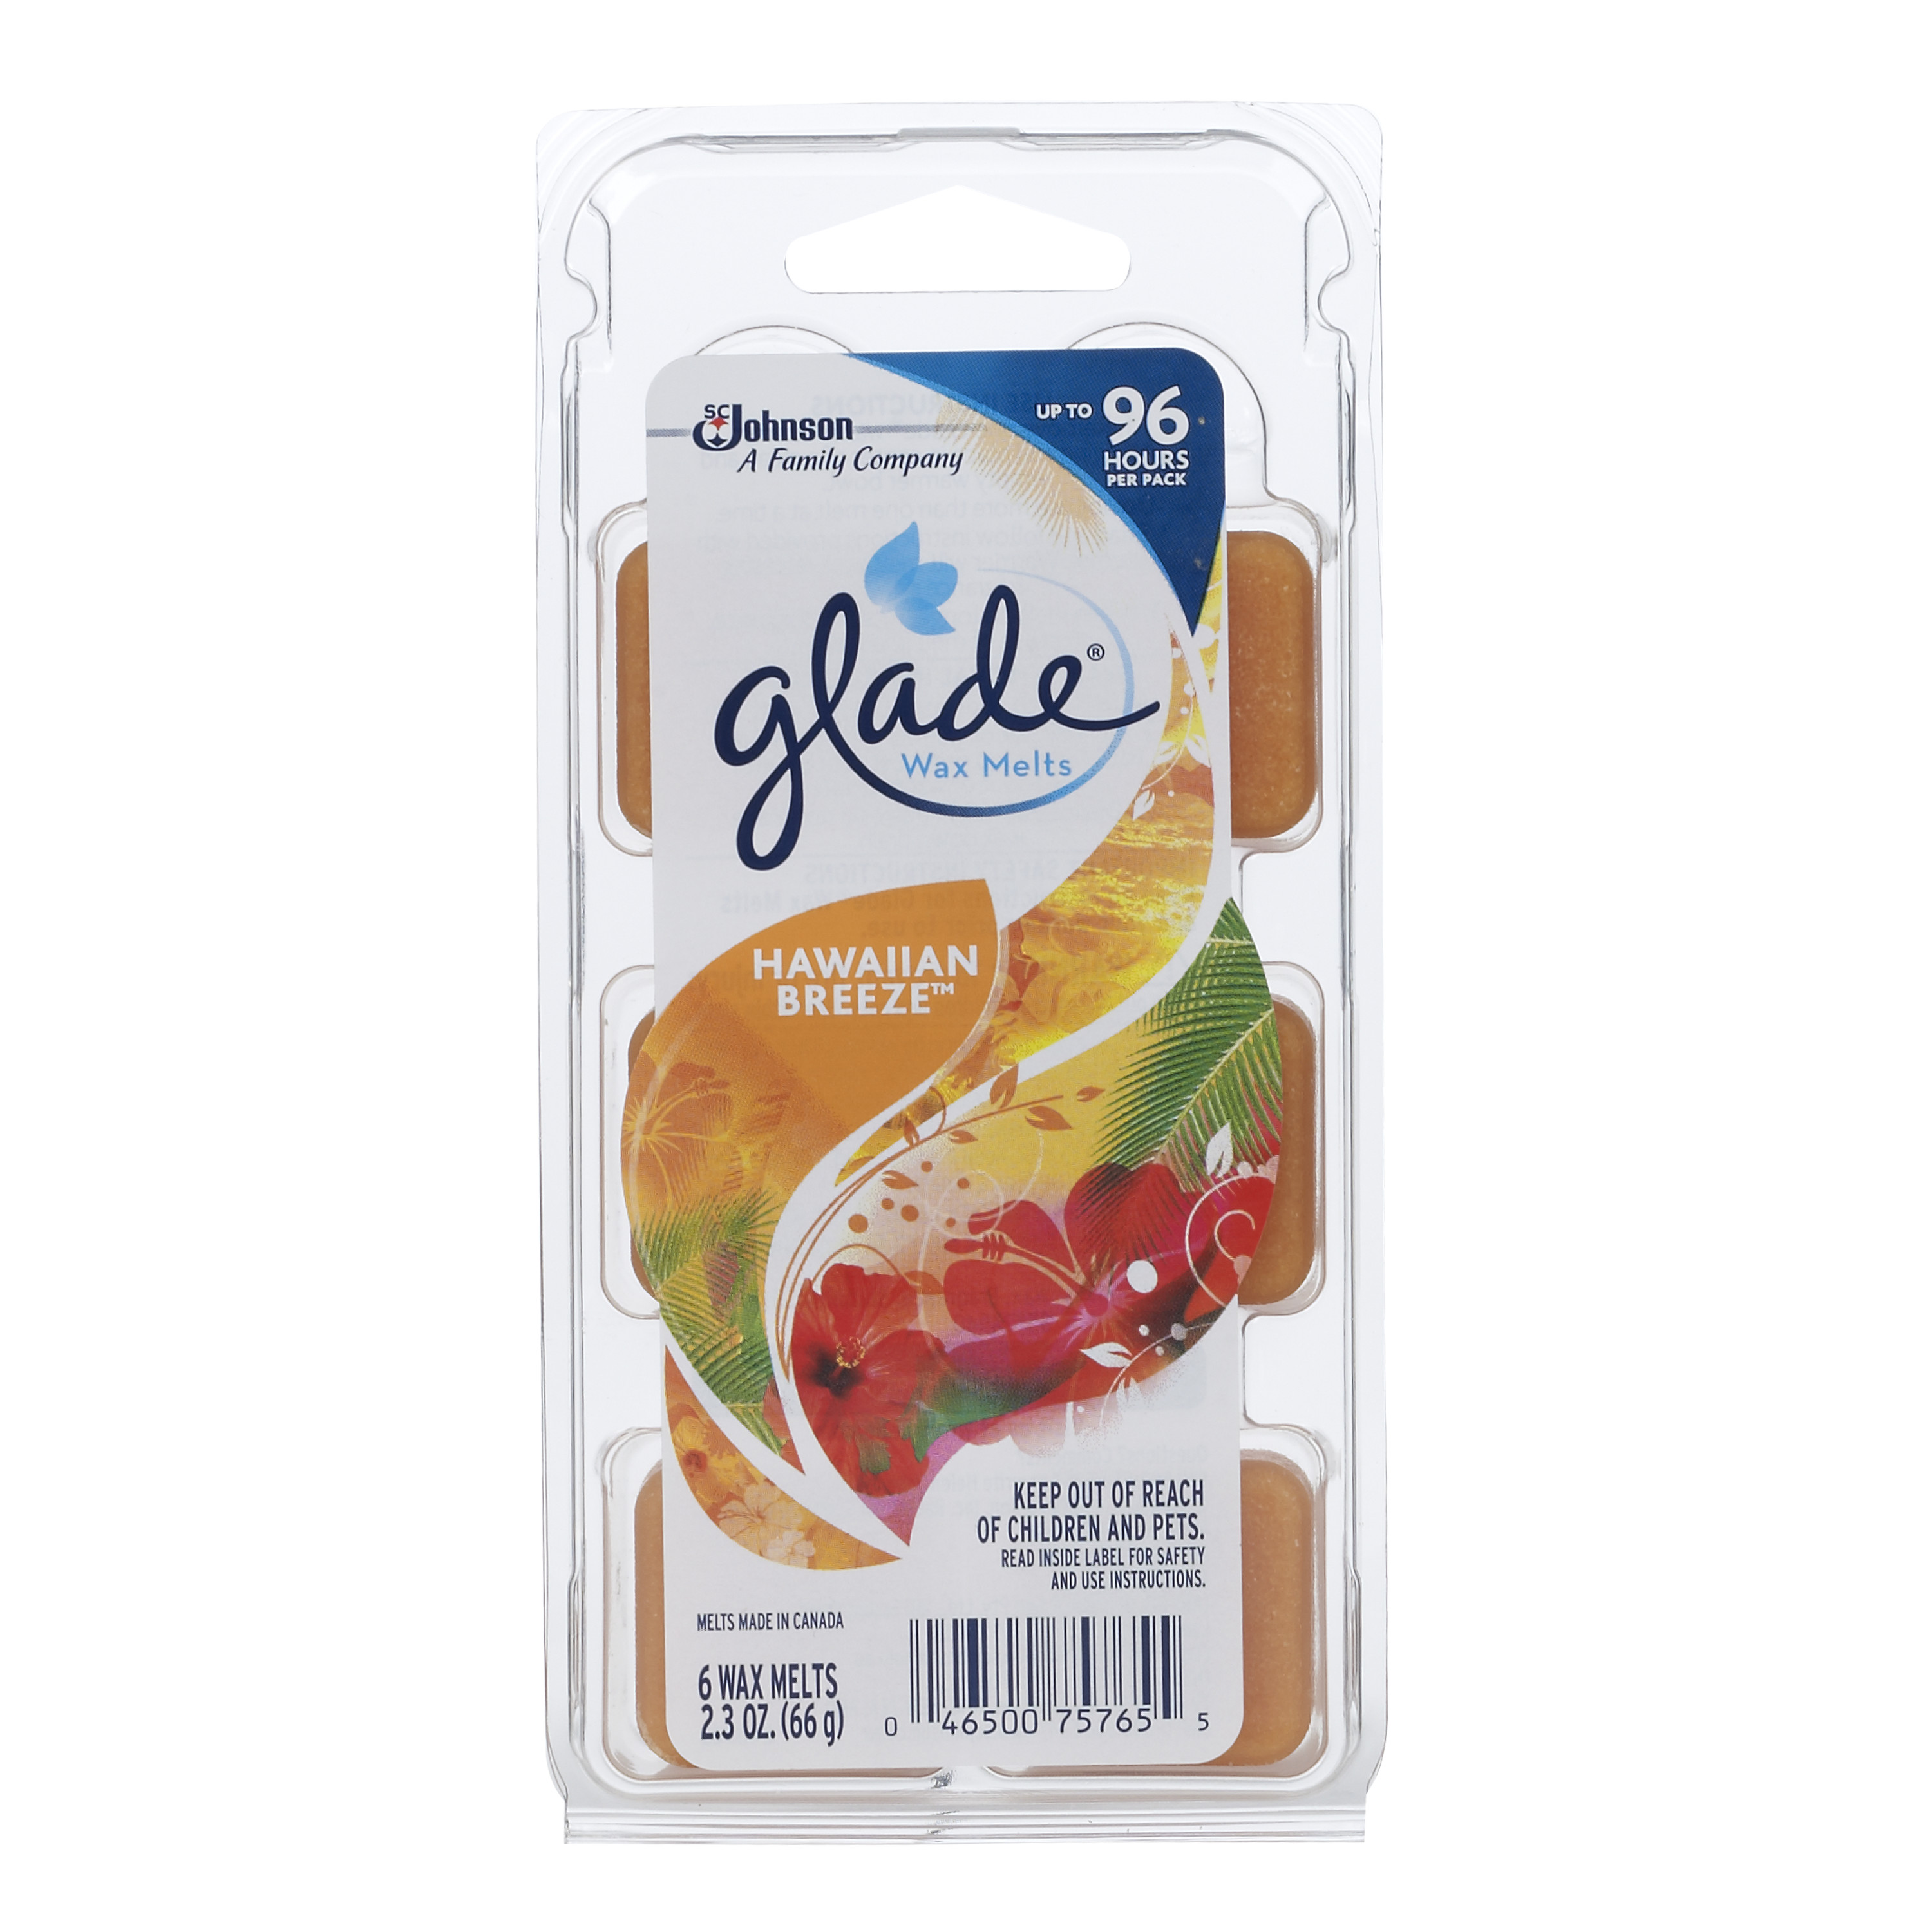 Glade Wax Melts, Hawaiian Breeze, 2.3 Oz. (6 Wax Melts)